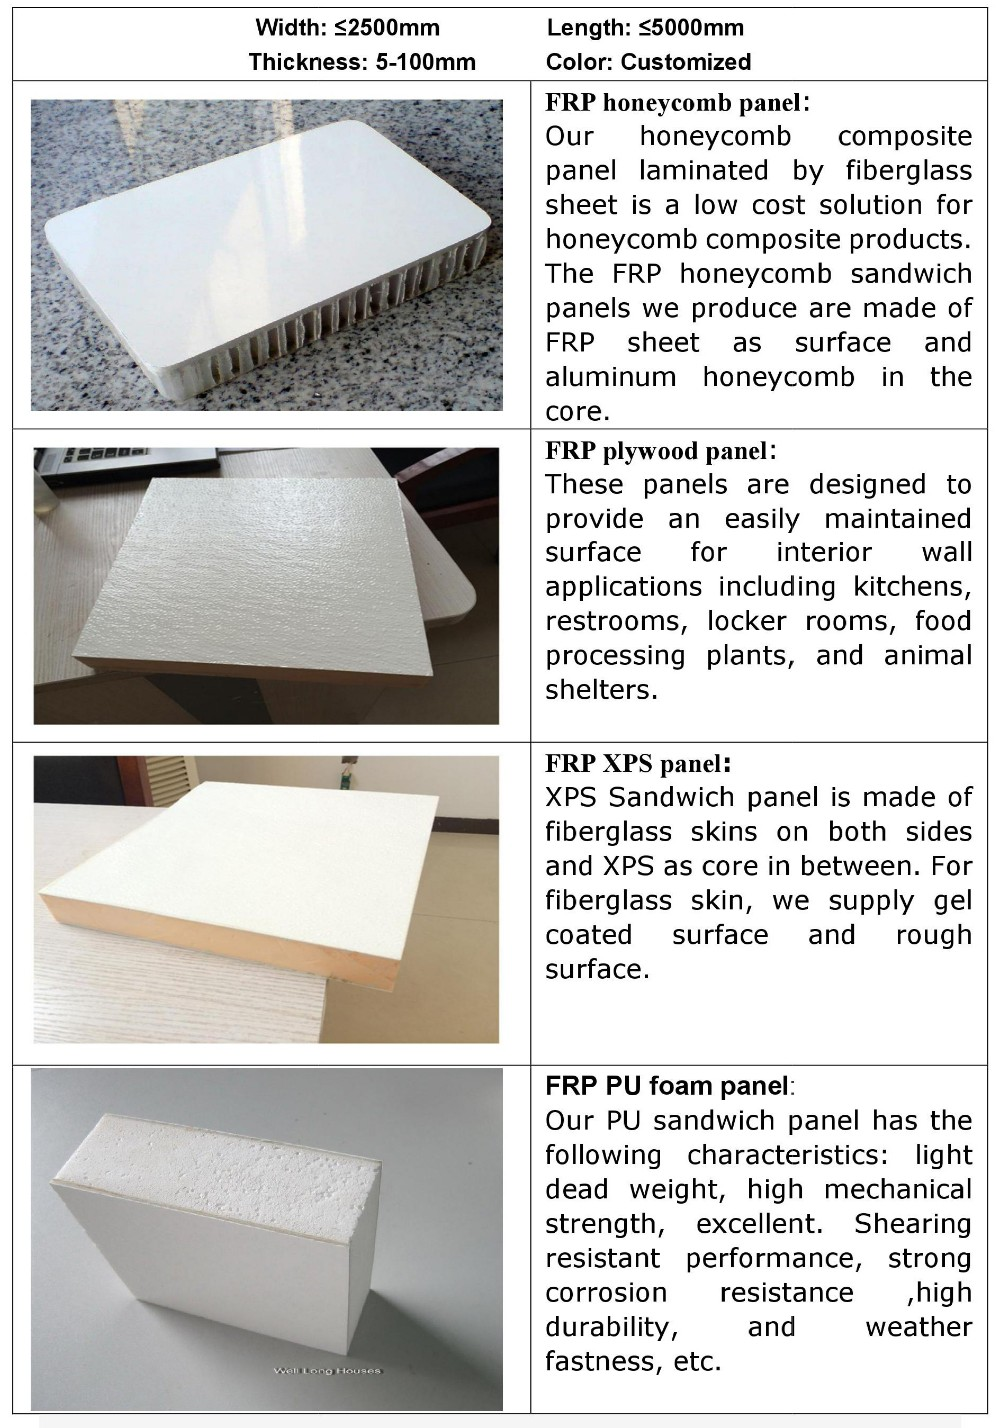 Sandwich Panels Types : No delaminating and peeling off frp wall panels sandwich